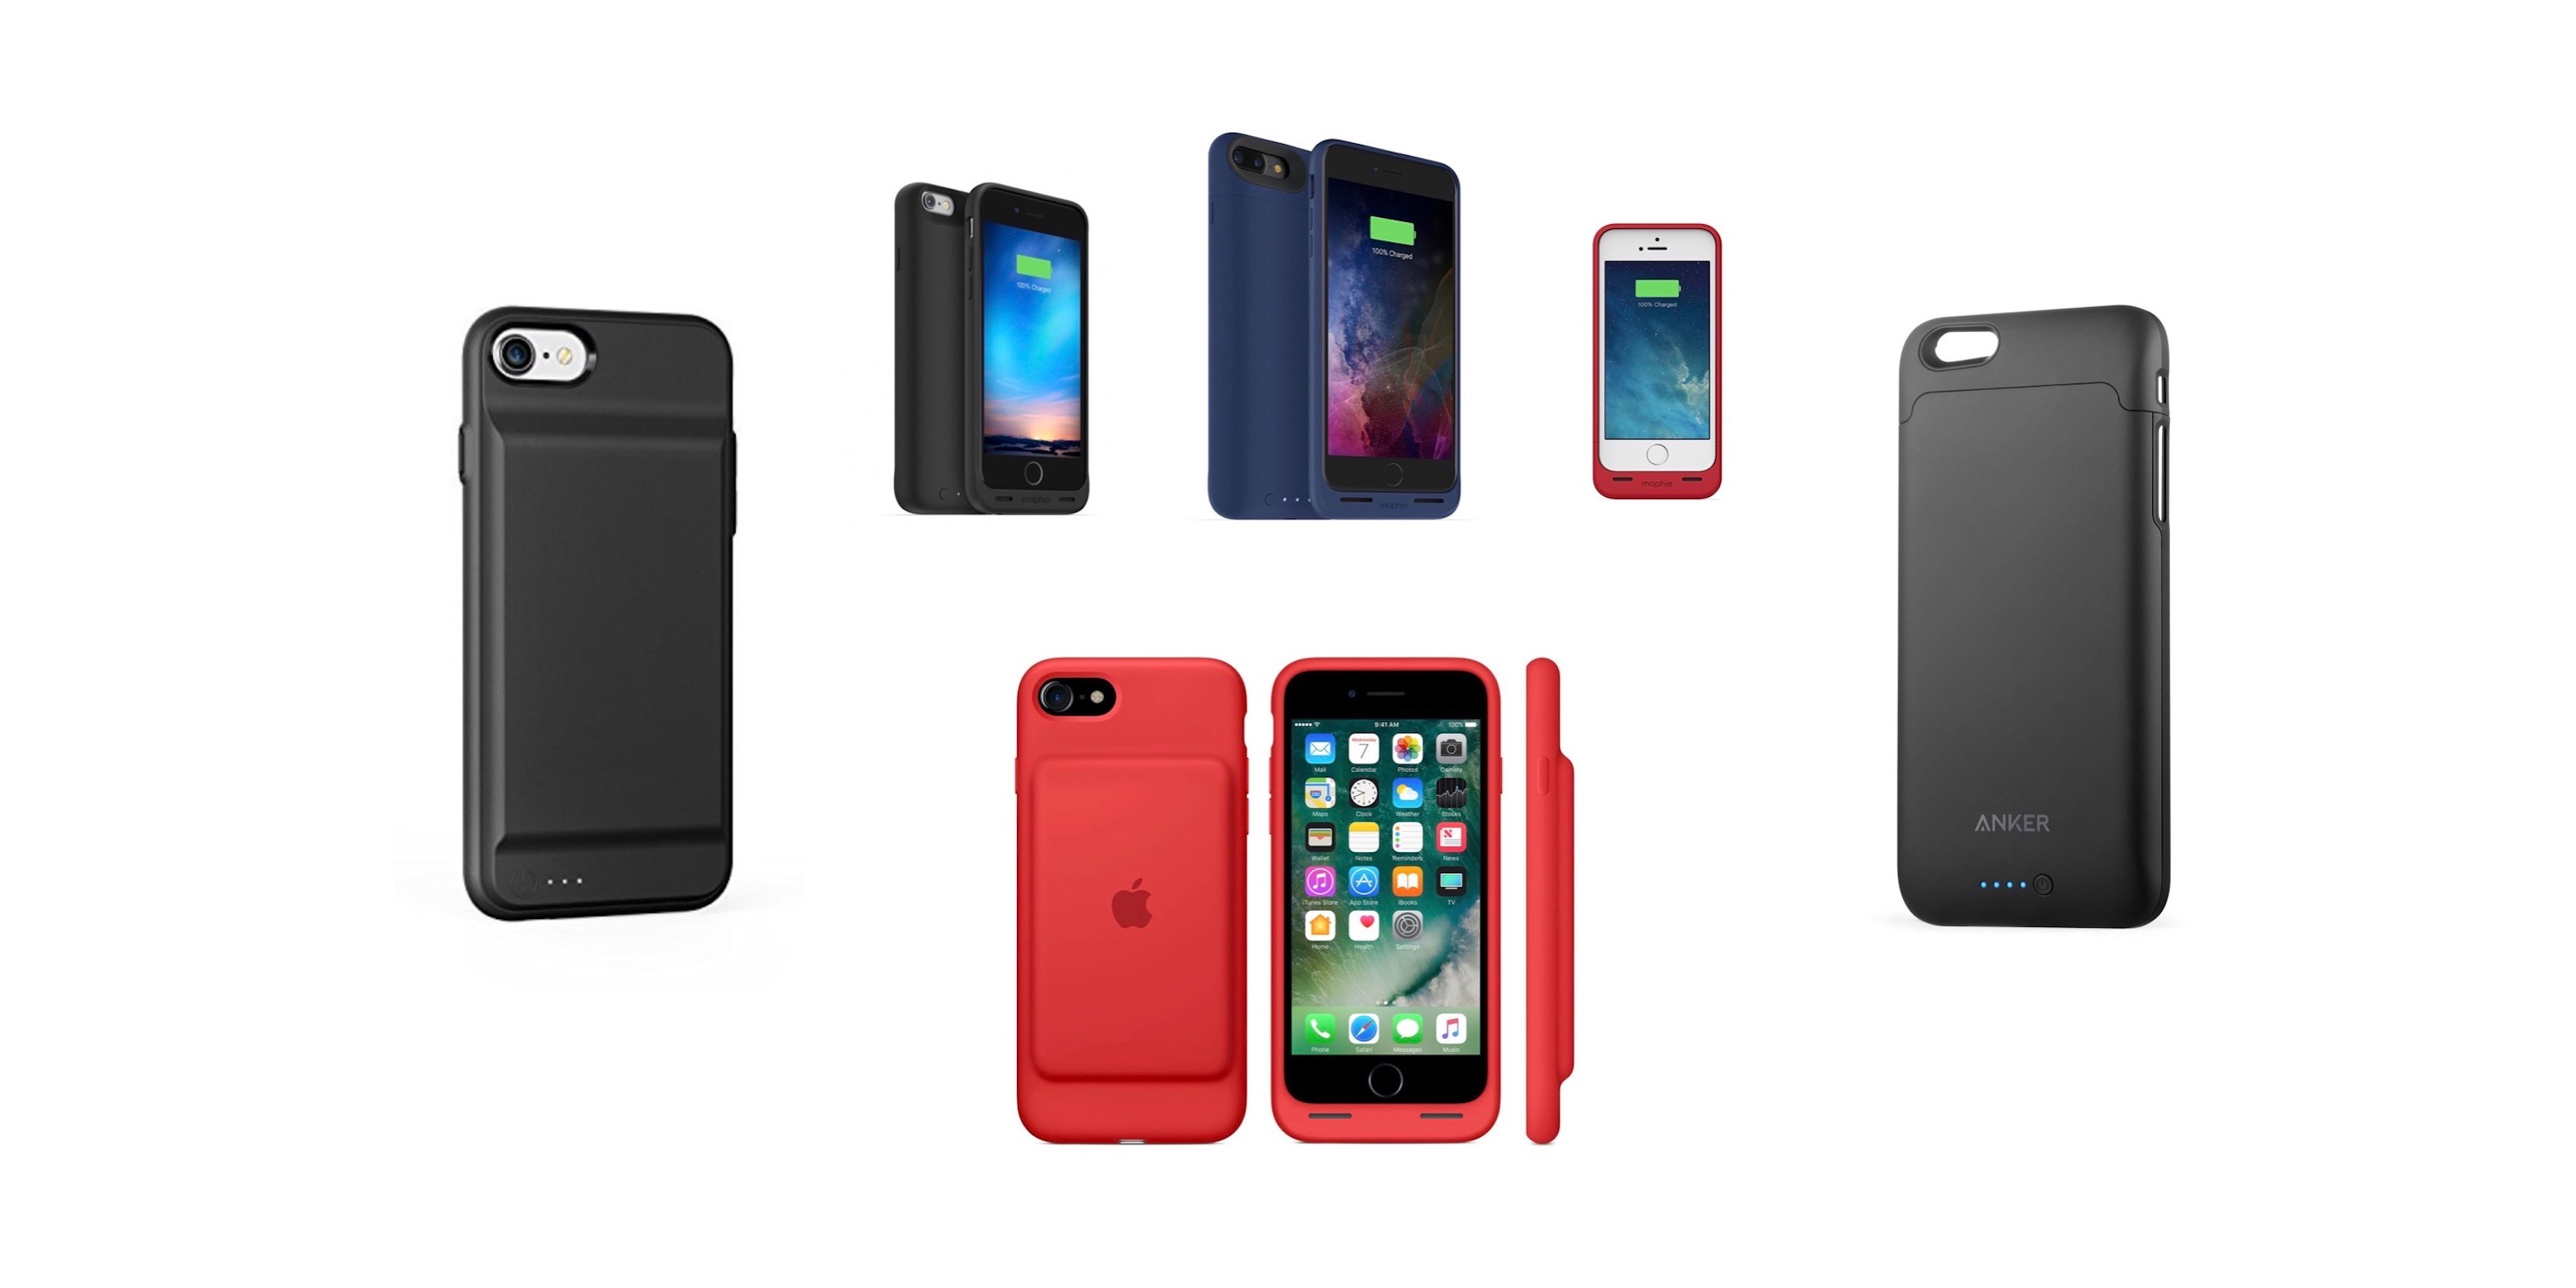 anker phone cases iphone 7